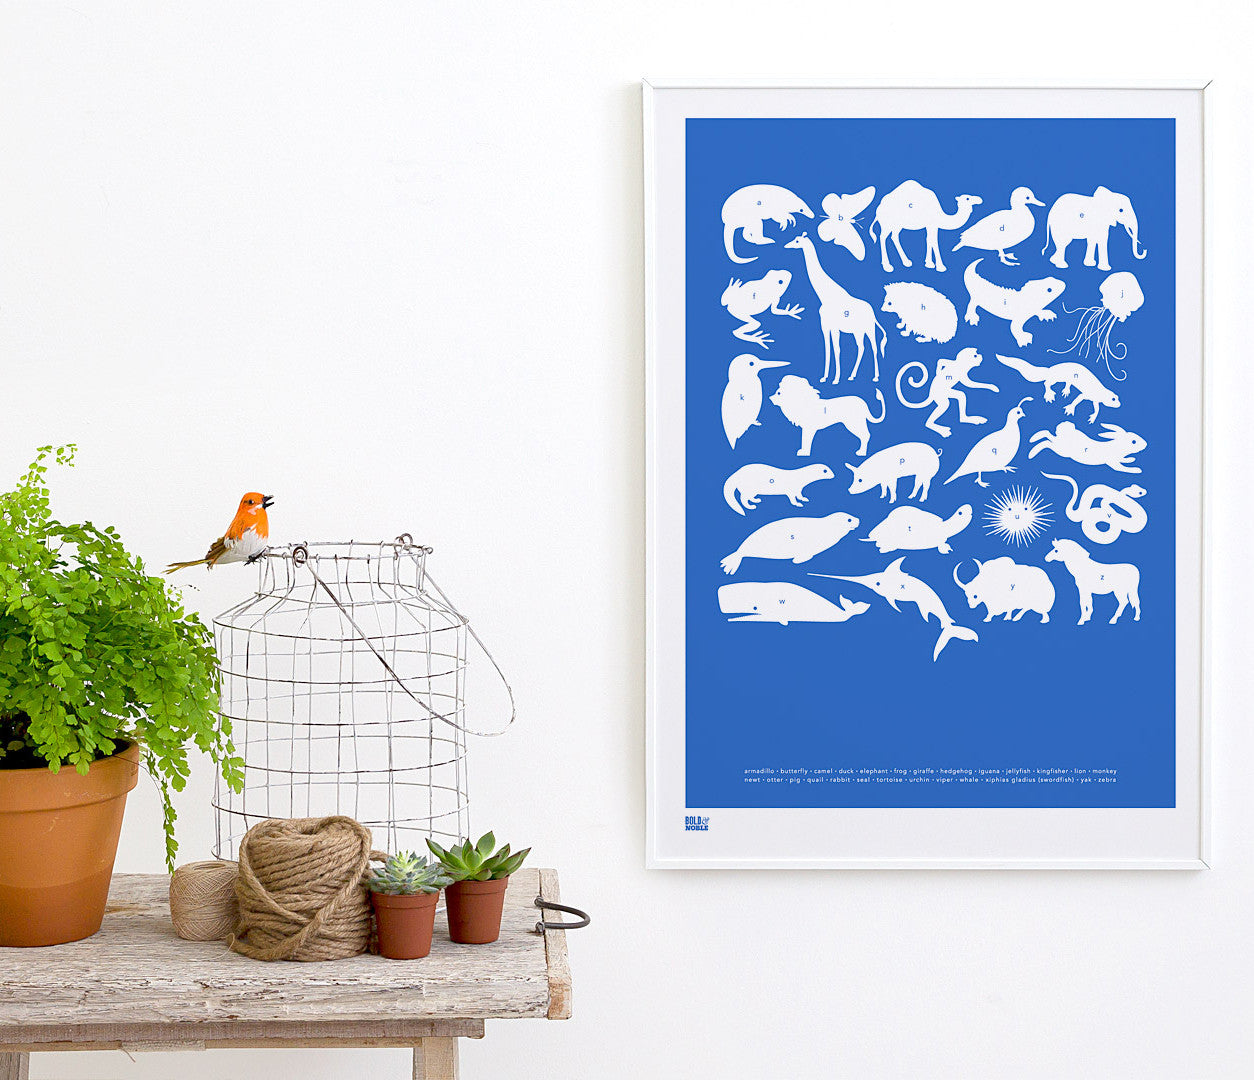 Wall art ideas, economical screen prints, Creatures A-Z kids print in cobalt blue